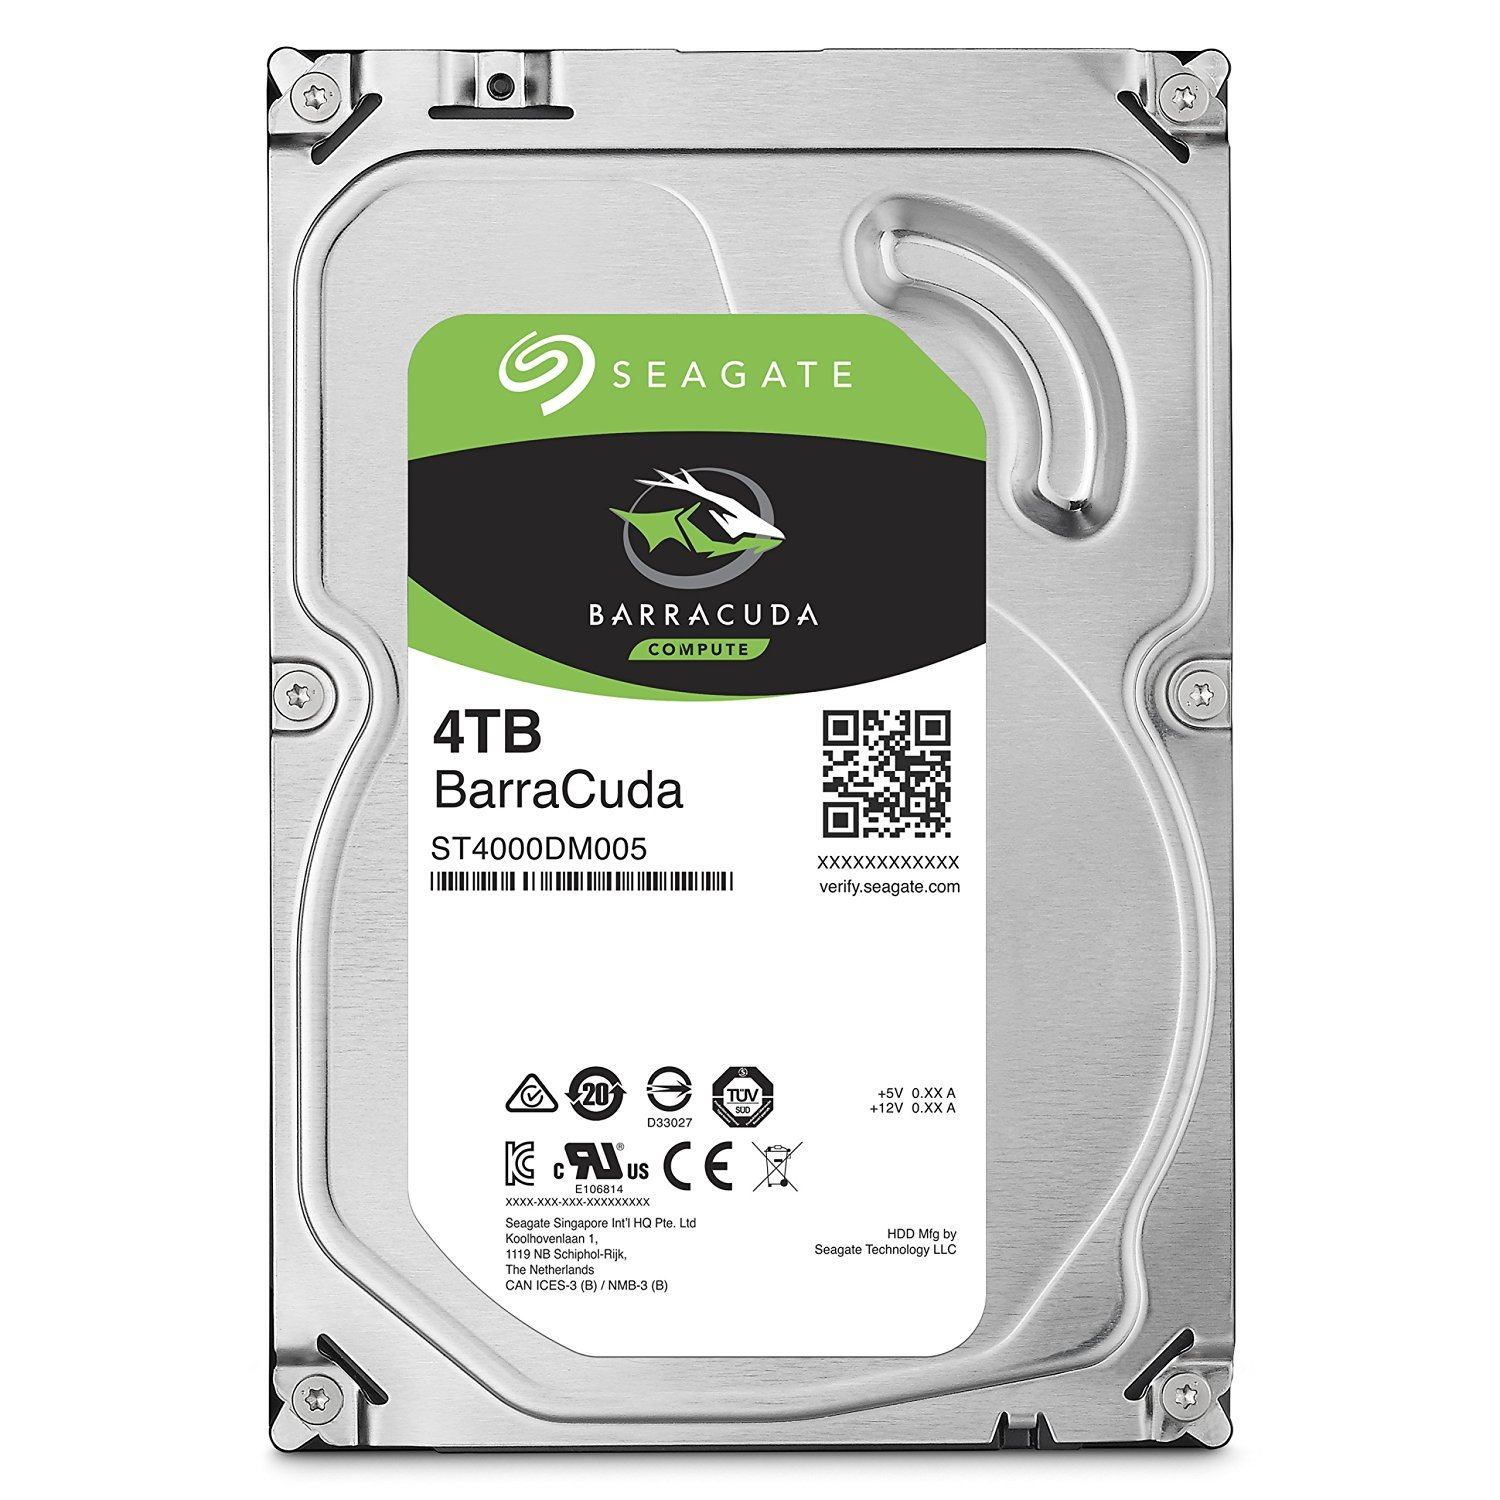 Seagate 4TB BarraCuda SATA 6Gb/s 64MB Cache 3.5-Inch Internal Hard Drive (ST4000DM005) by Seagate